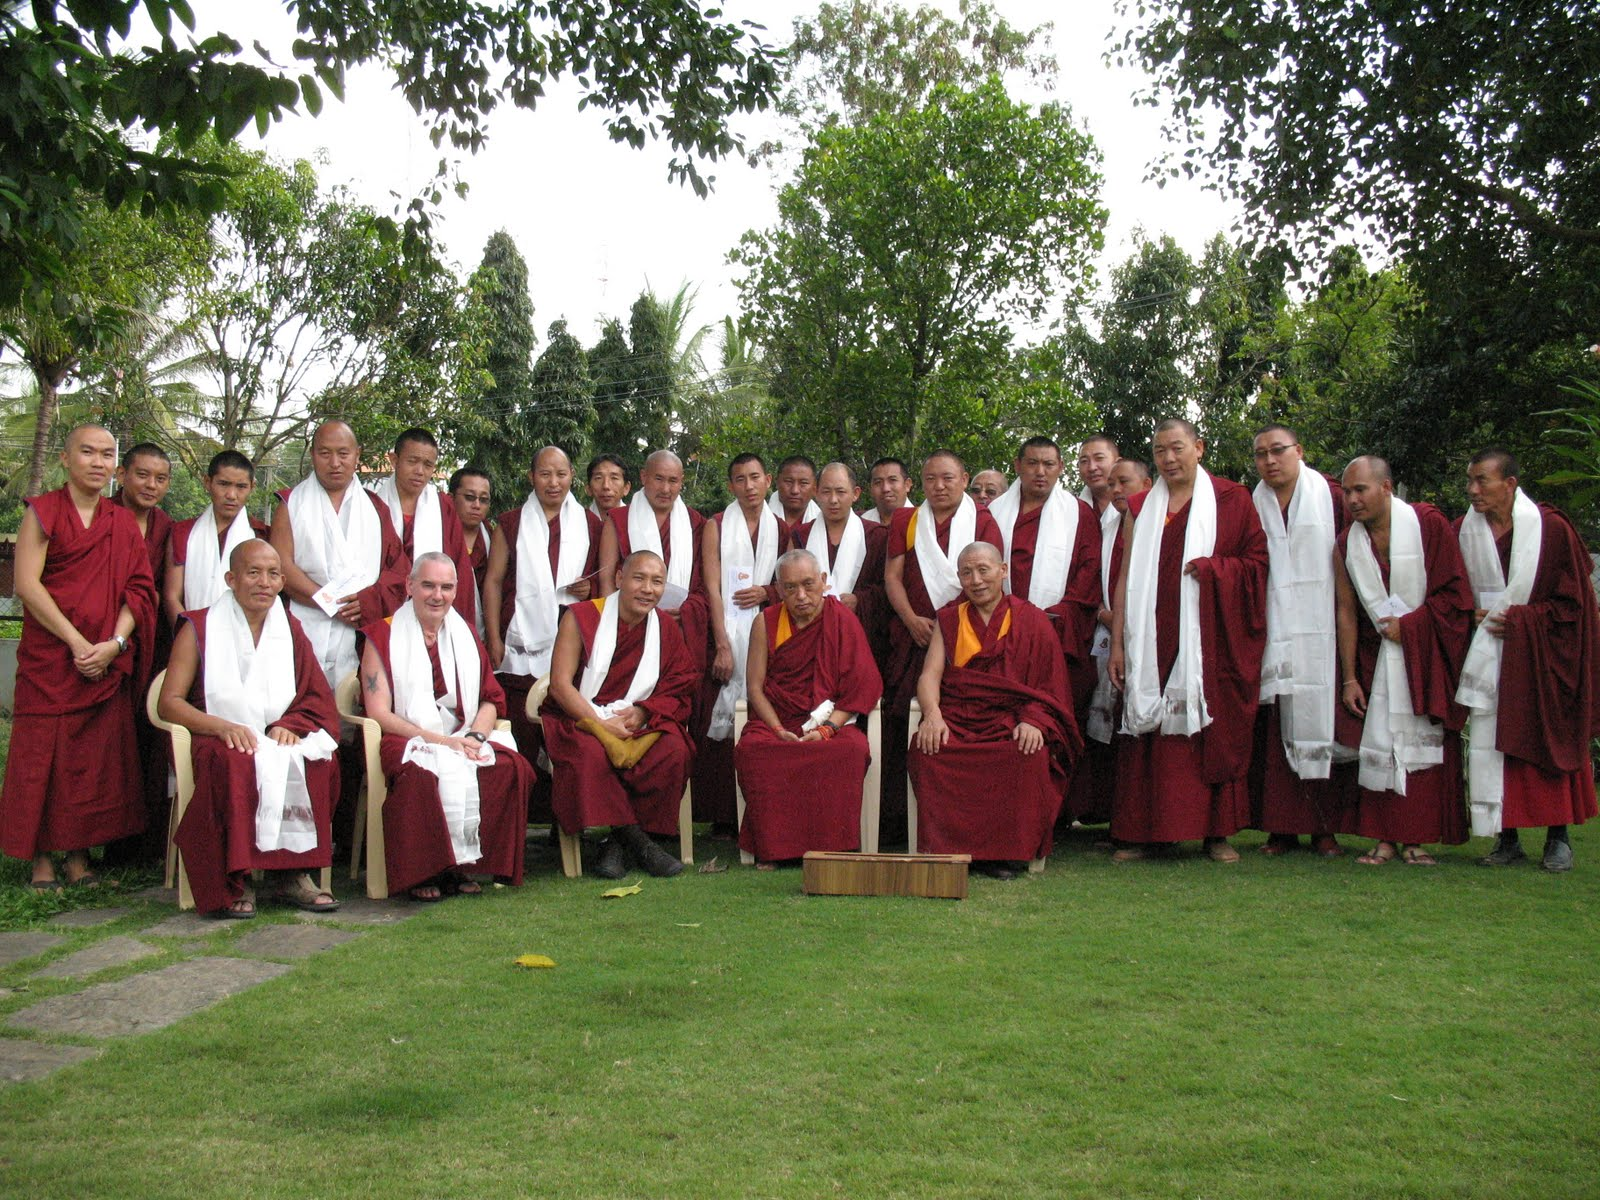 Lama Zopa Rinpoche, Abbott of Sera Je Monastery, Ven. Roger Kunsang and the monks of Sera Je Monastery